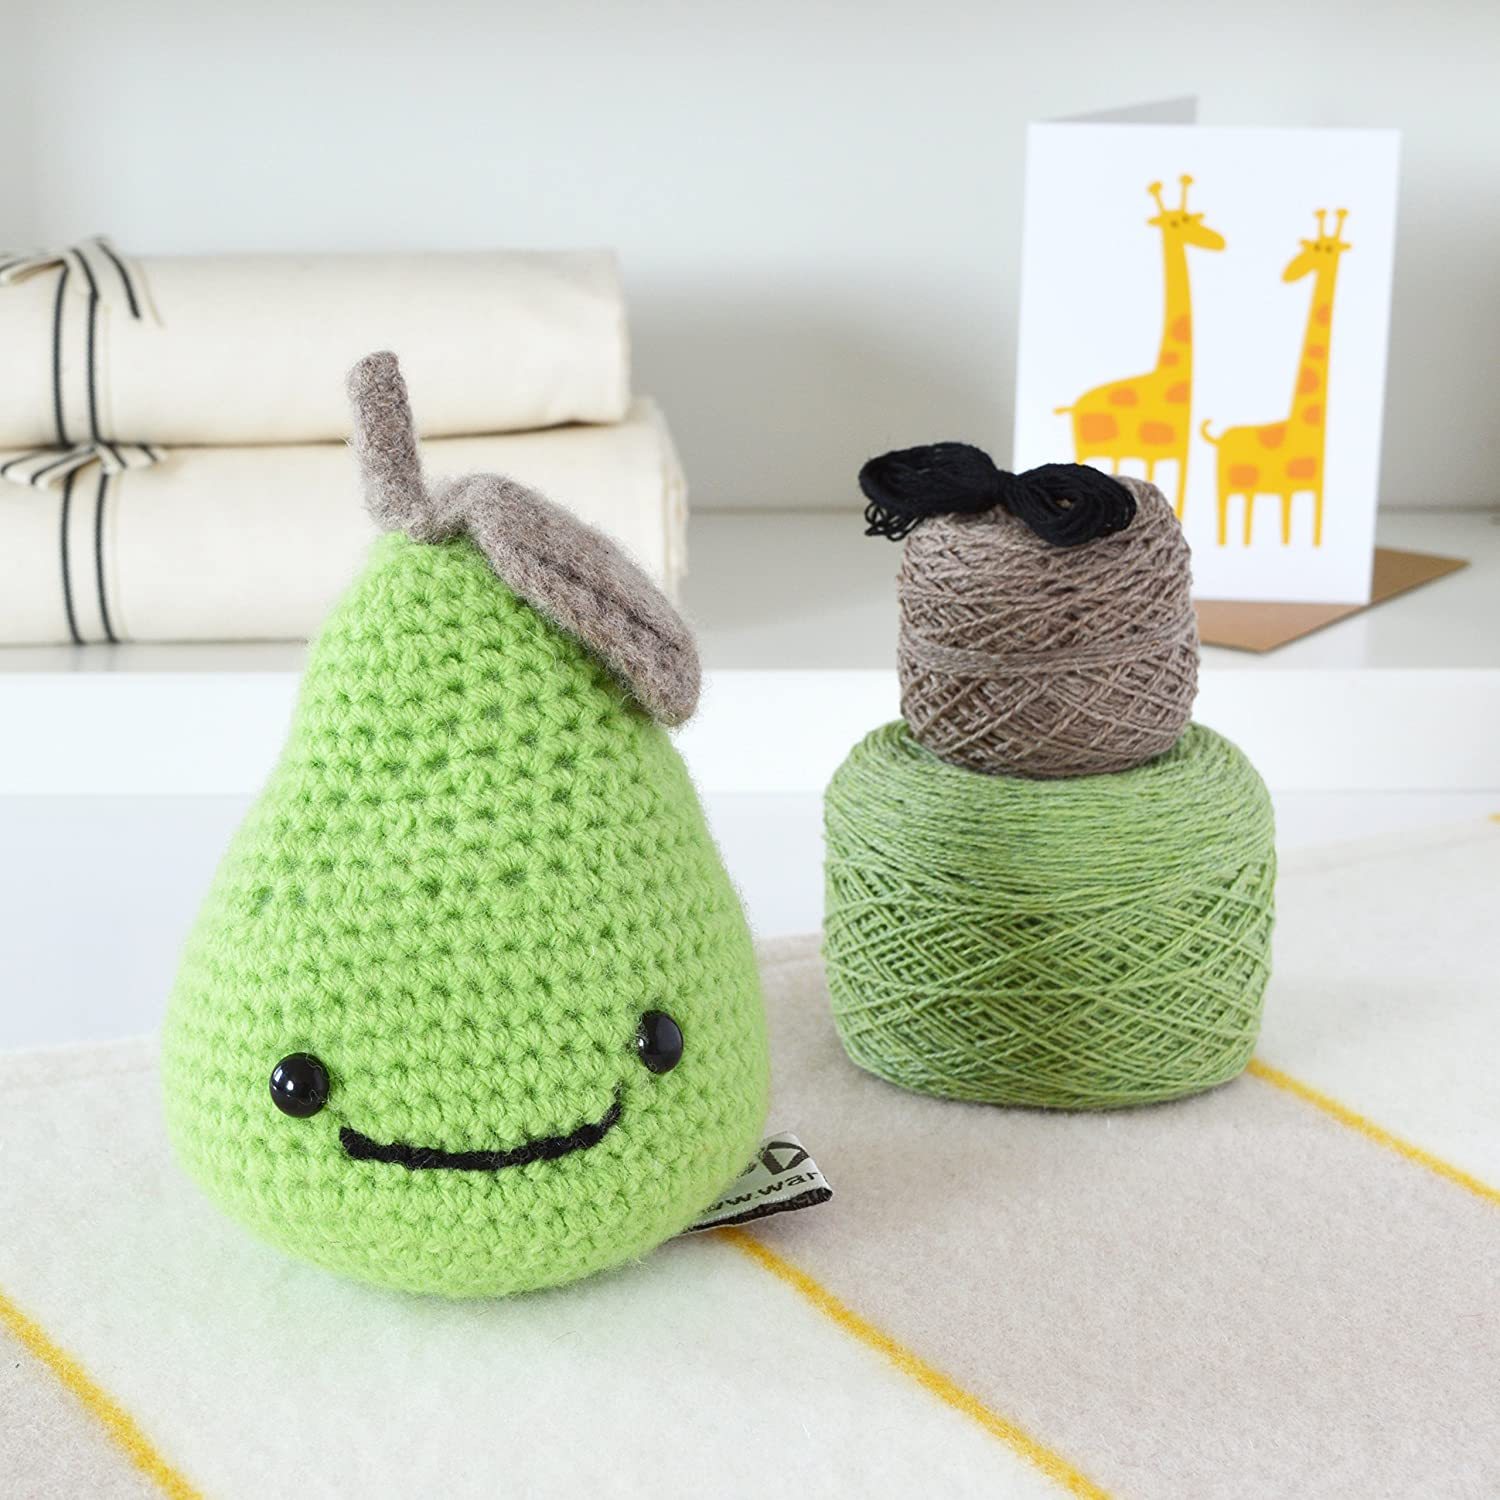 DIY Kit de ganchillo, lujo Smiley pera Amigurumi Kit para tejer de ganchillo, DIY Kits Crochet: Amazon.es: Hogar